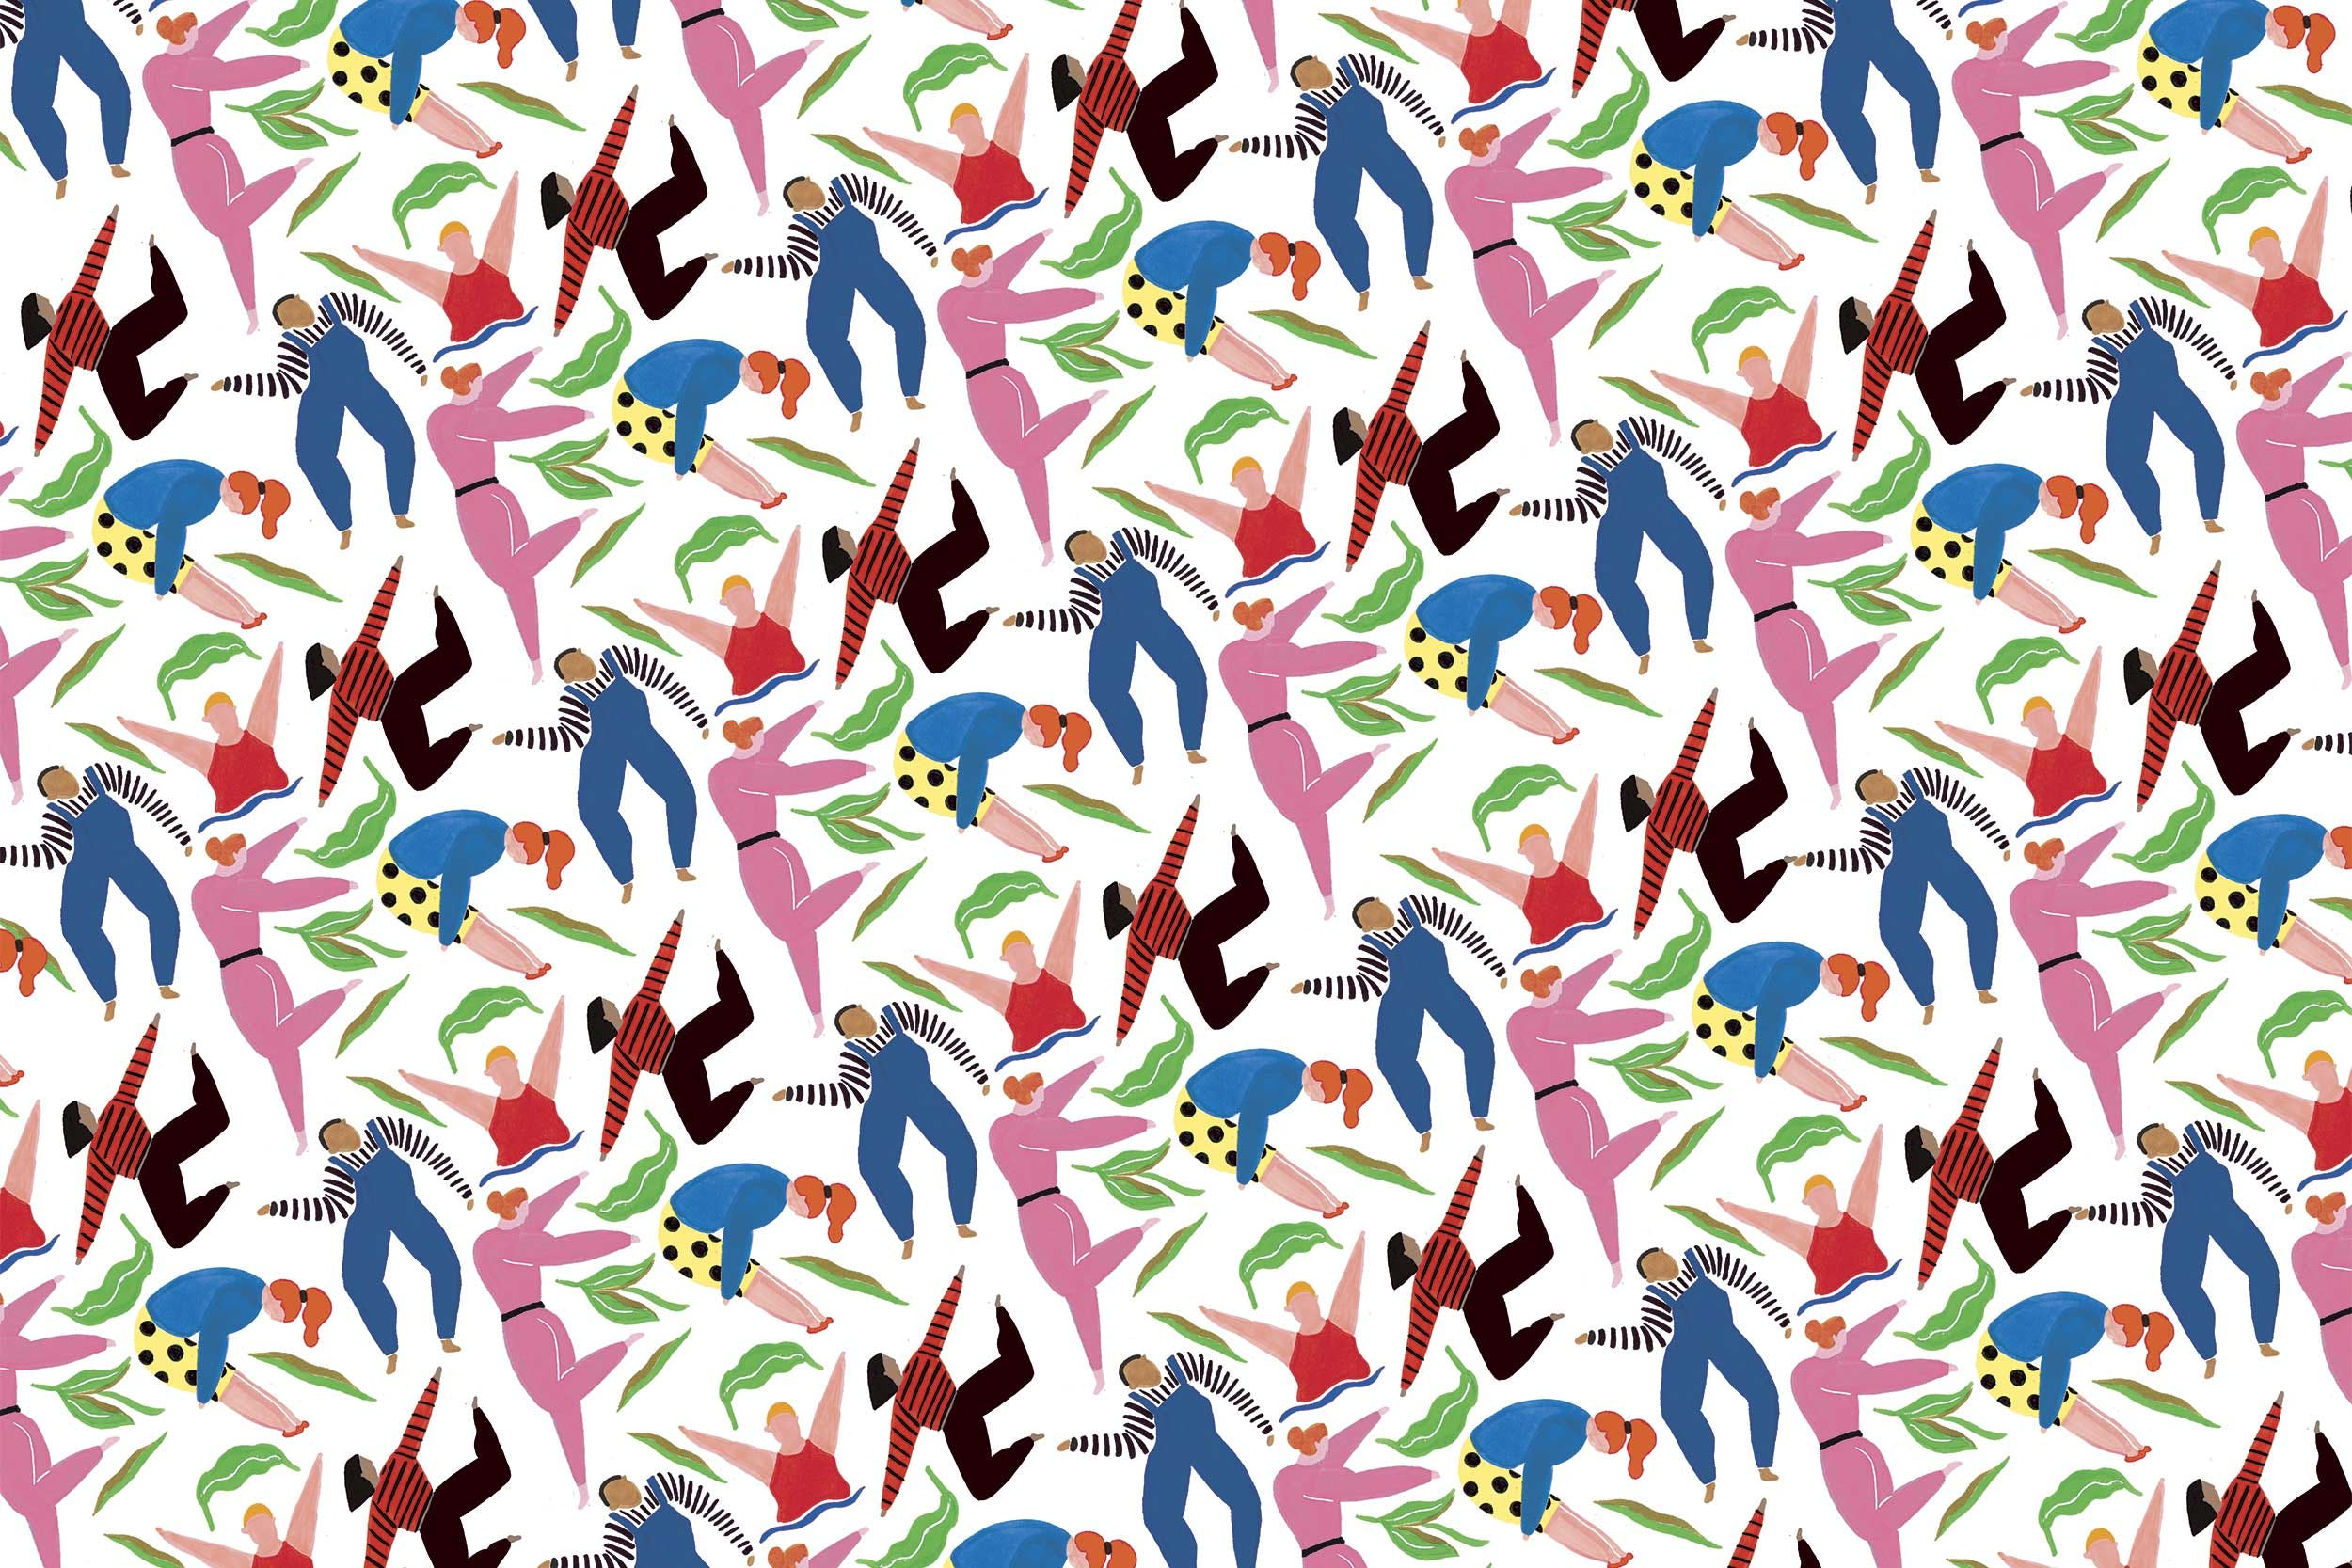 Repeating Scull pattern by Grace Lee